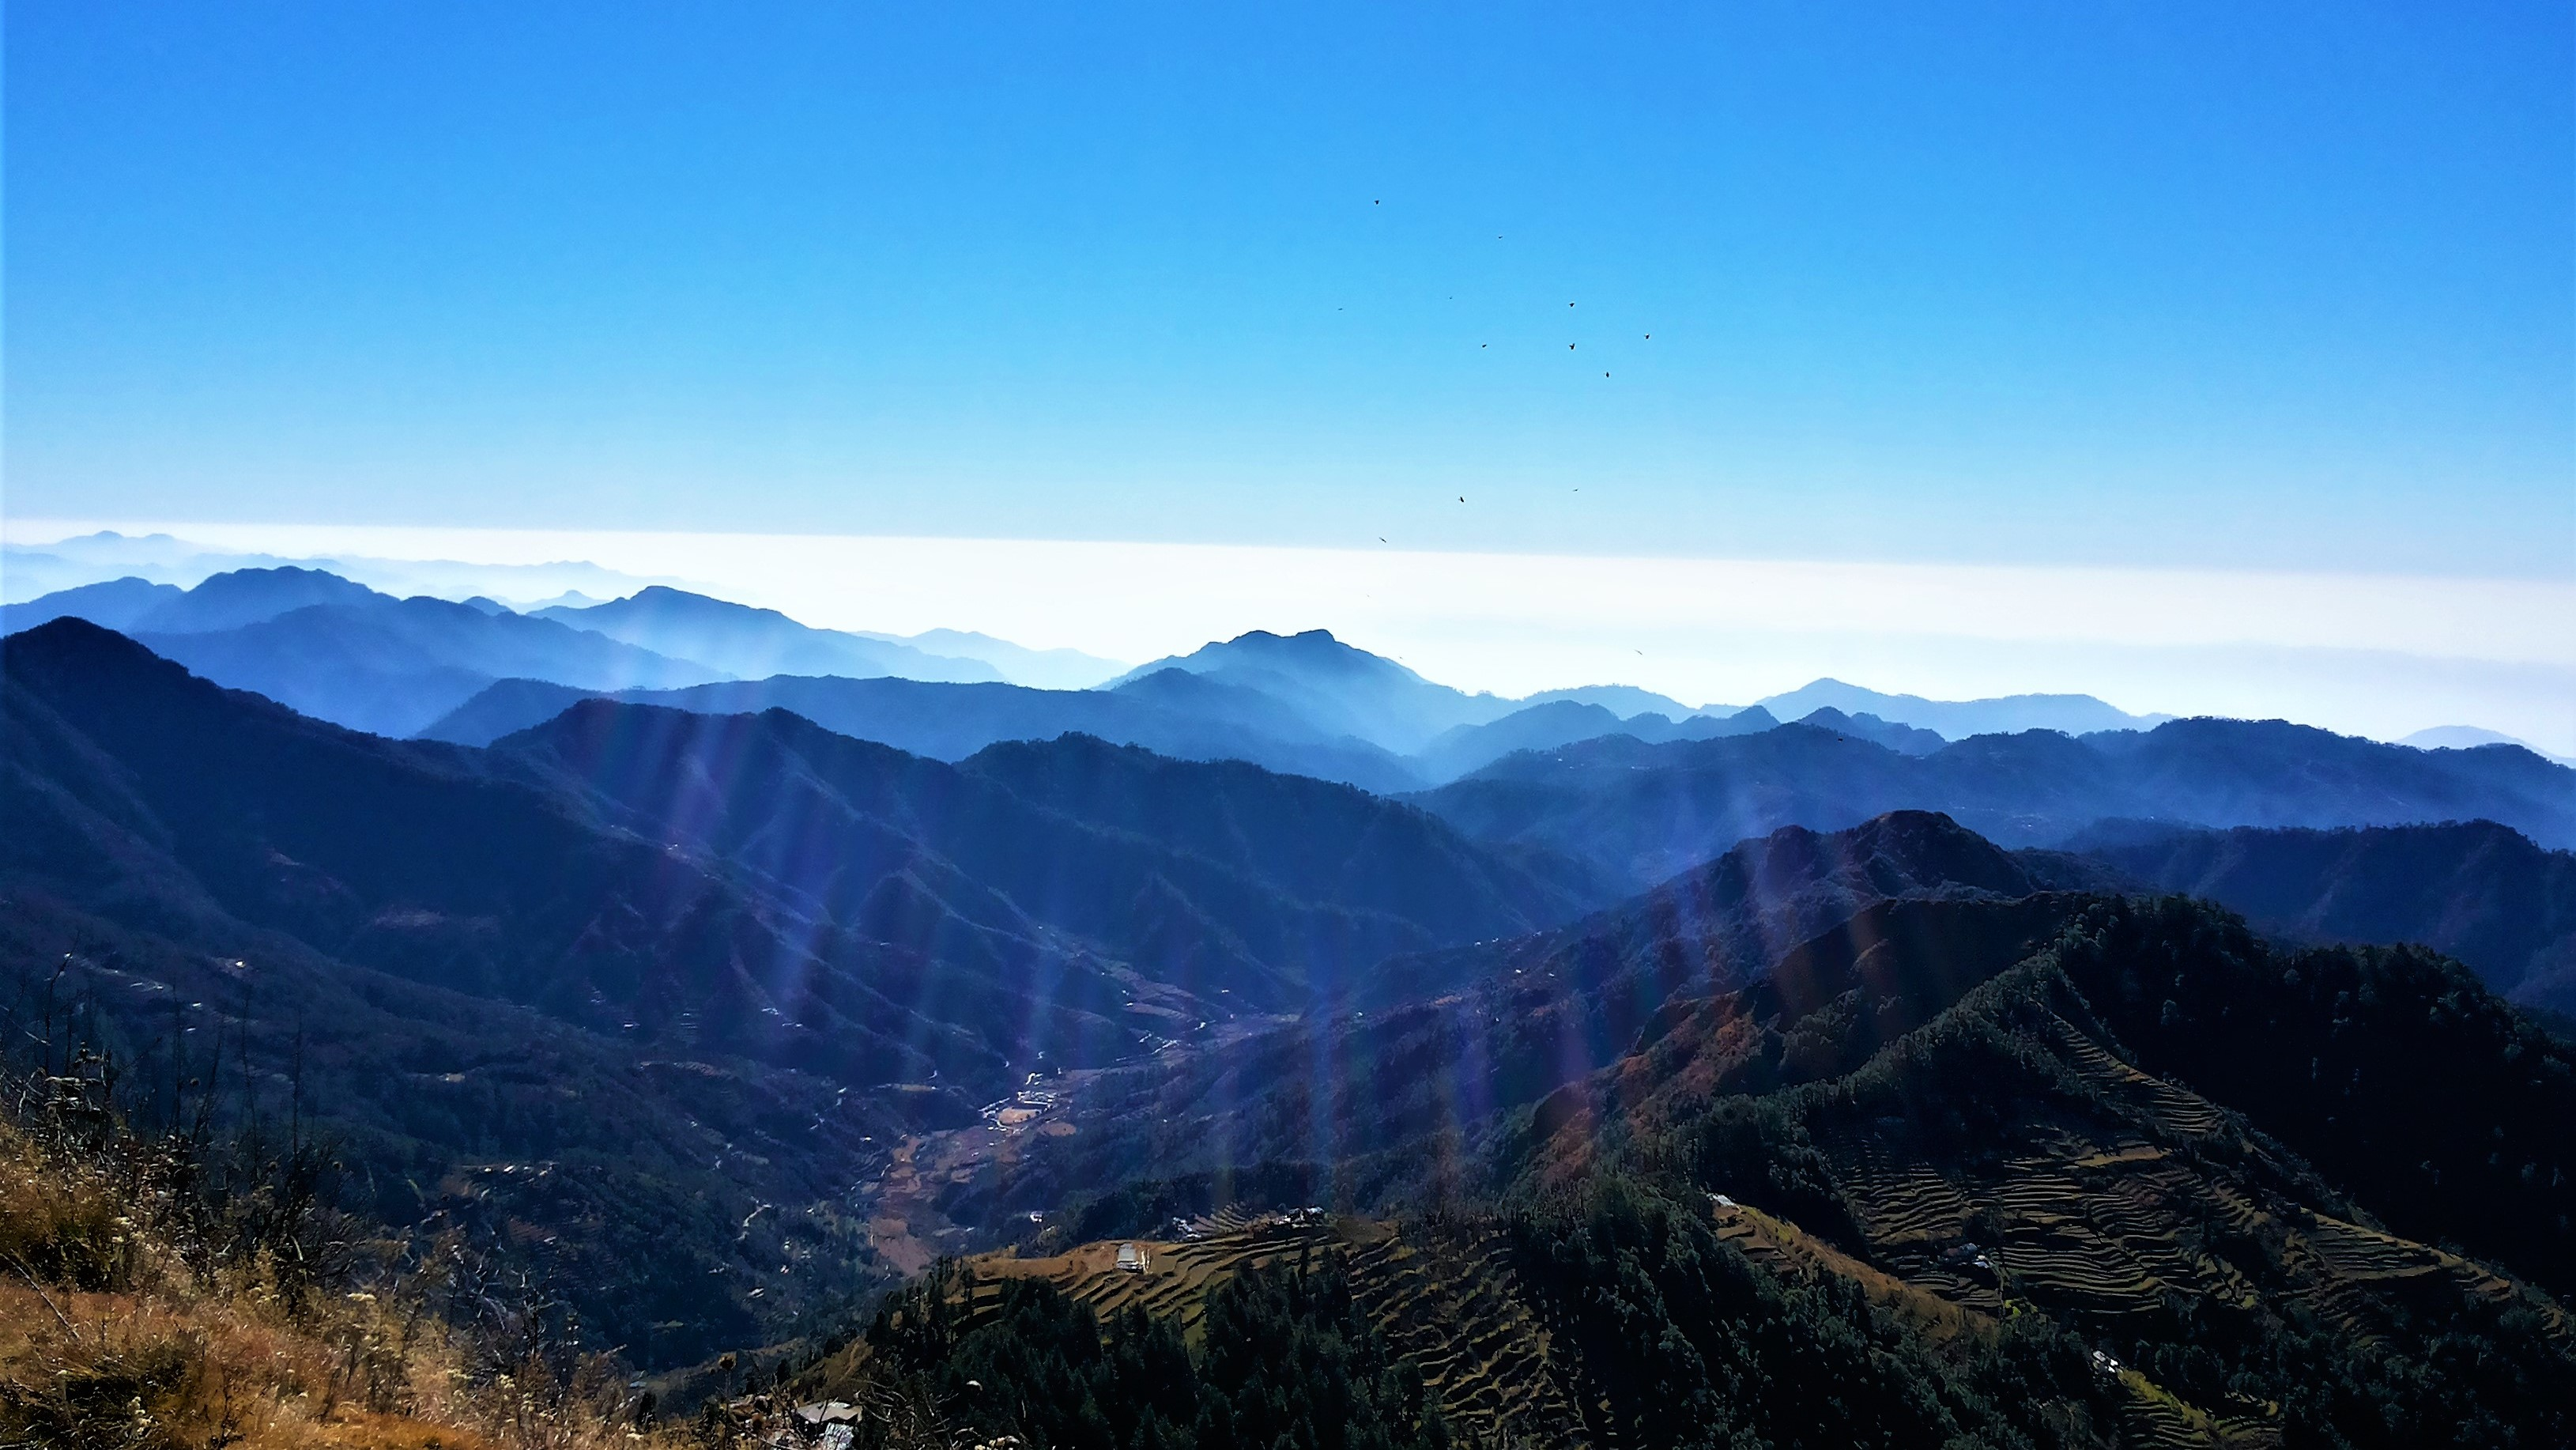 The blue mountains, Dhanaulti, 2013